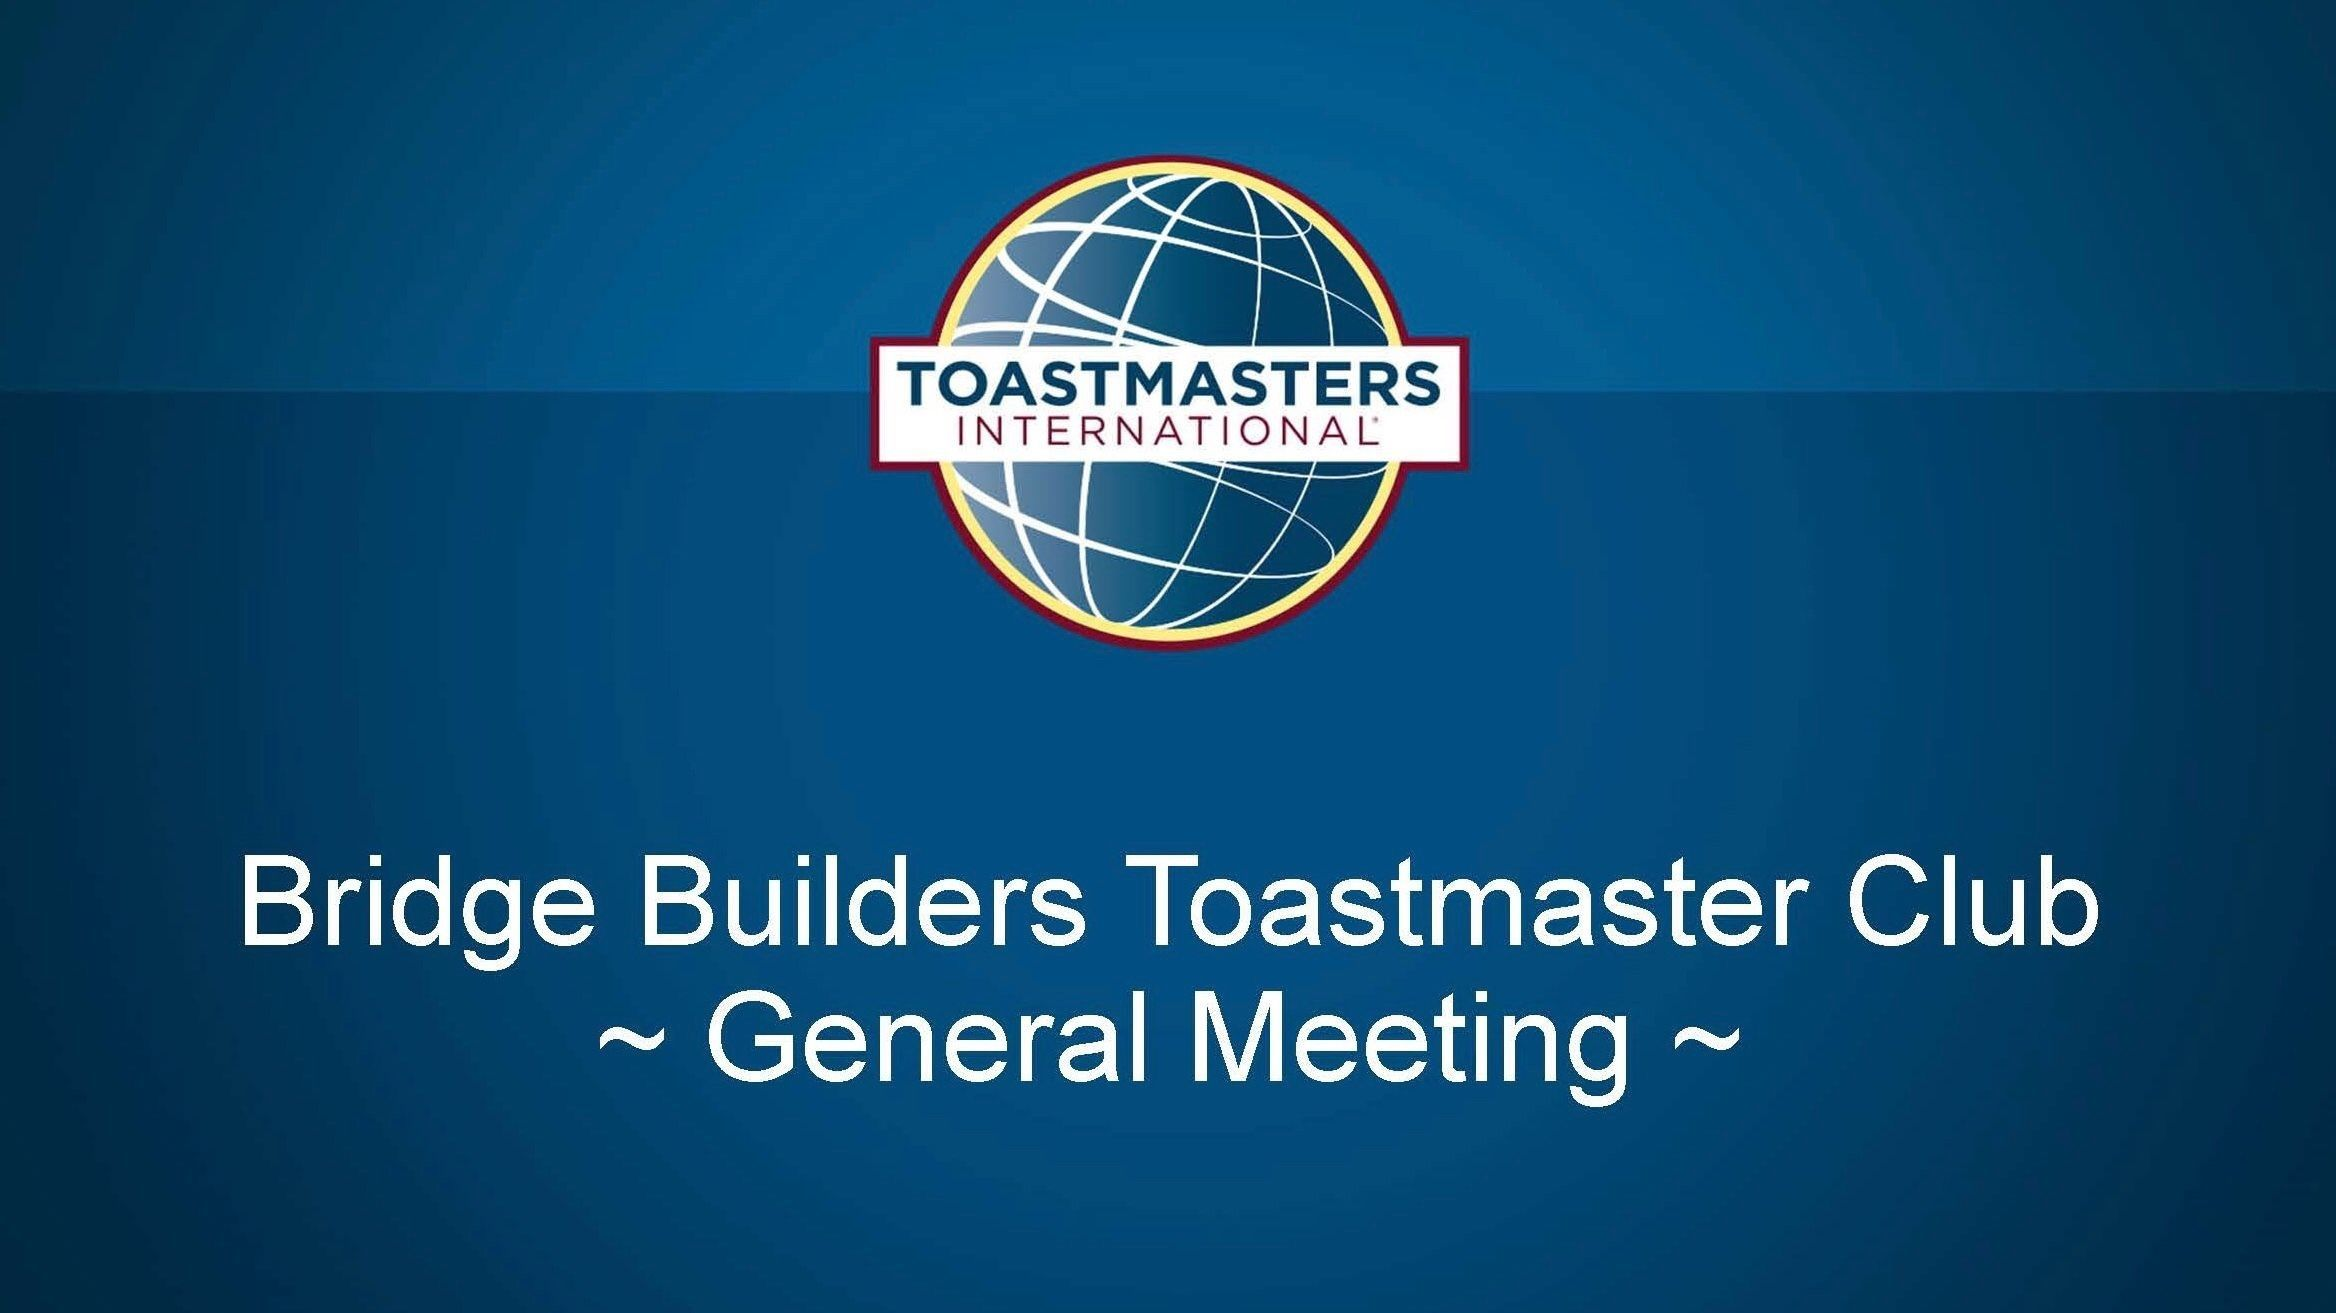 Bridge Builders Toastmasters Club General Meeting